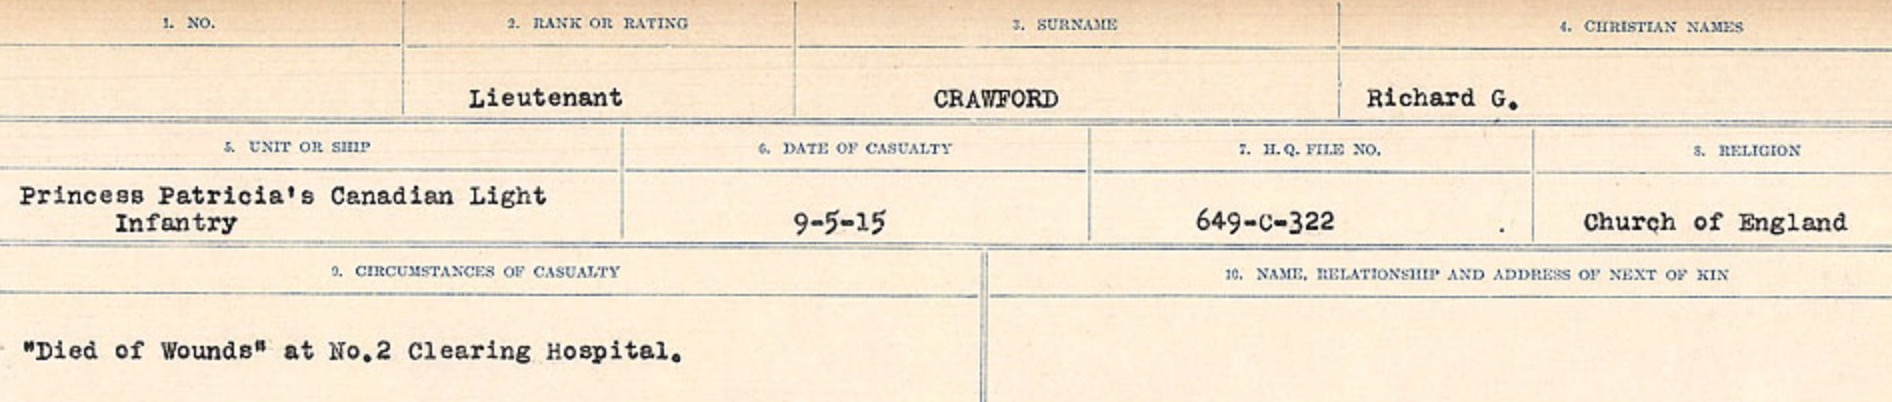 Circumstances of death registers– Source: Library and Archives Canada. CIRCUMSTANCES OF DEATH REGISTERS, FIRST WORLD WAR Surnames: CRABB TO CROSSLAND Microform Sequence 24; Volume Number 31829_B016733. Reference RG150, 1992-93/314, 168. Page 377 of 788.